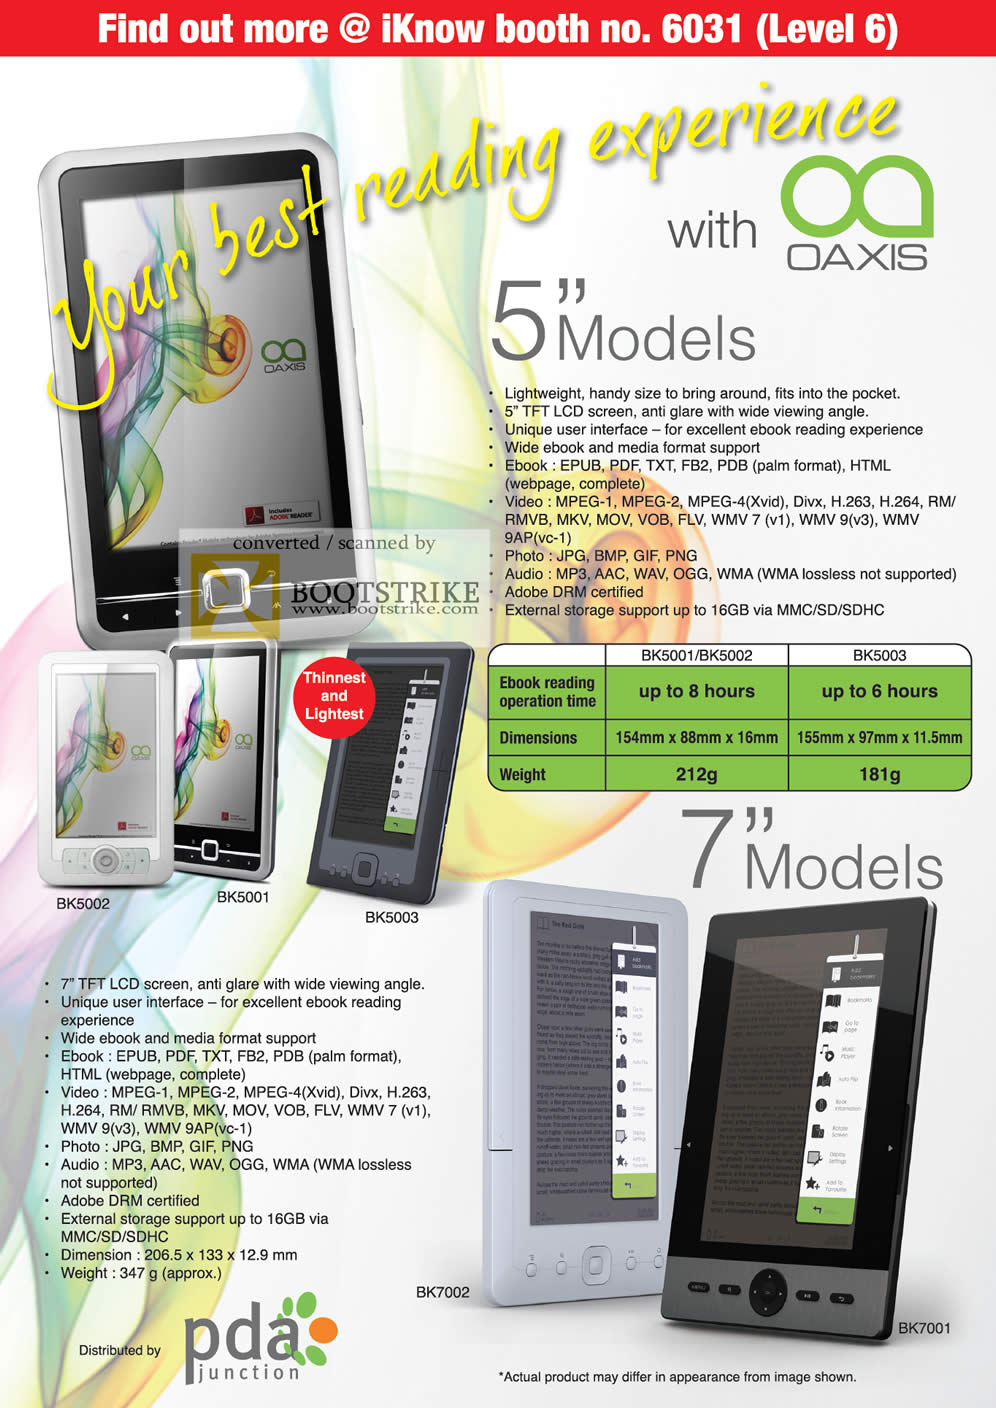 IT Show 2011 price list image brochure of IKnow Oaxis Ebook Reader BK5002 BK5001 BK5003 BK7002 BK7001